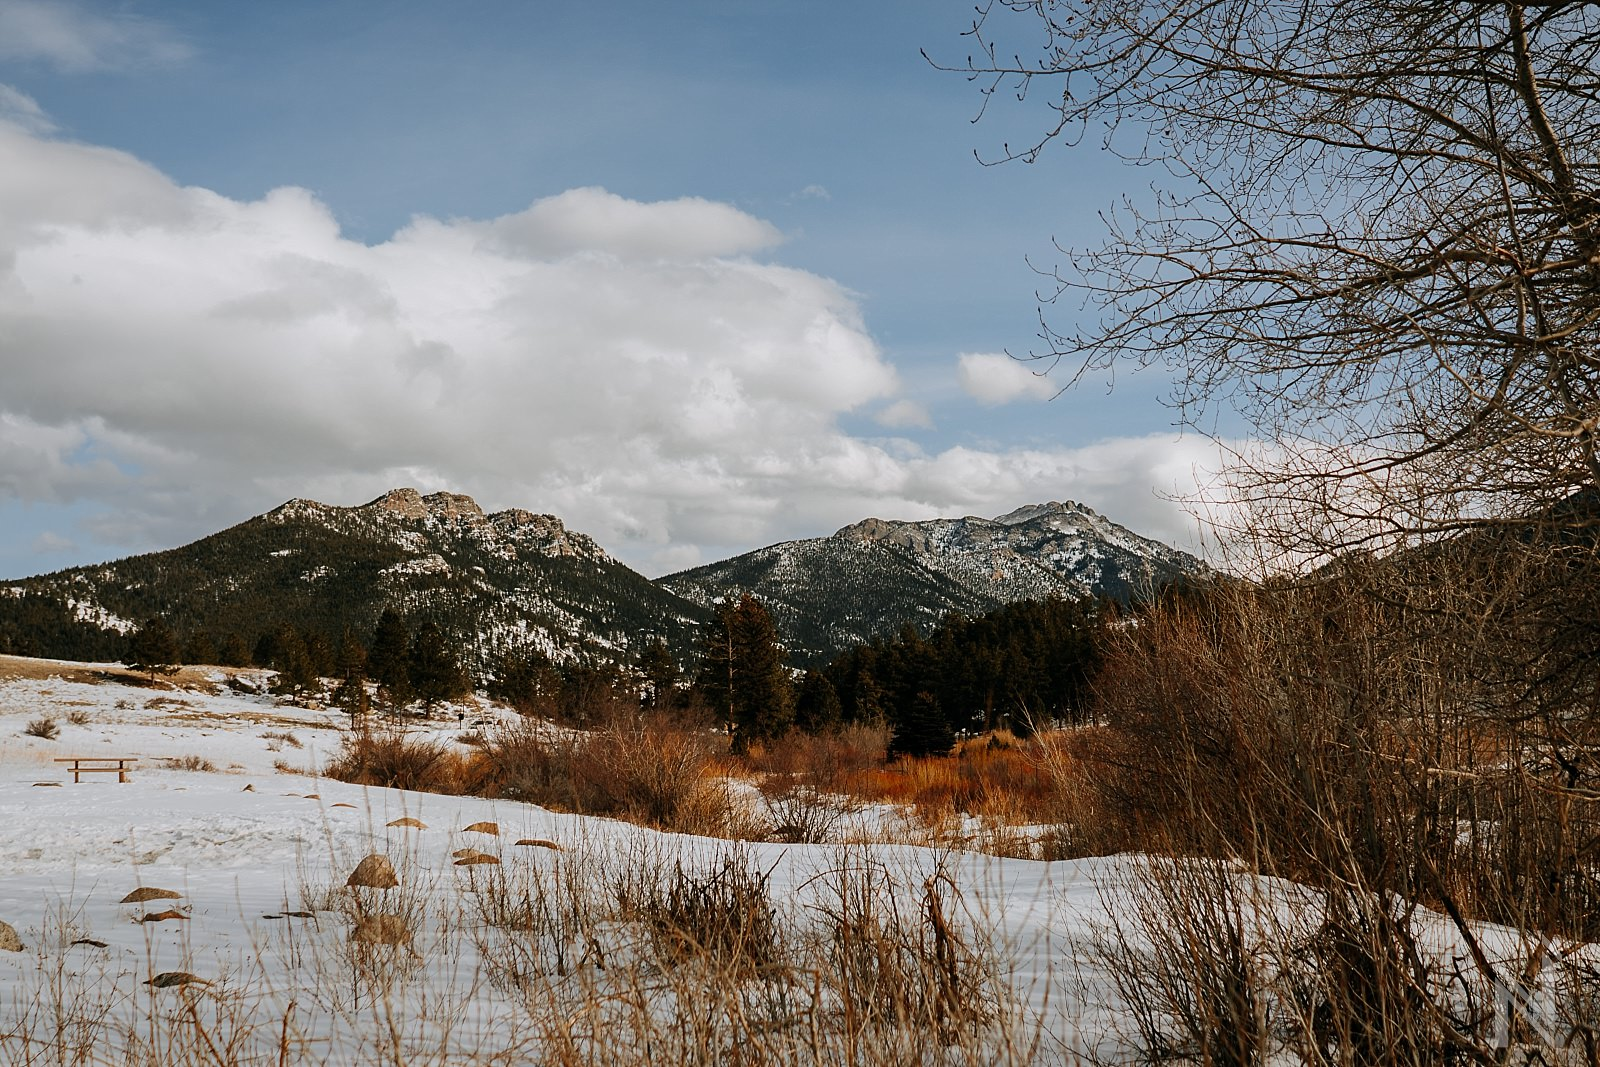 Estes Park and Rocky Mountain National Park landscape photography of Mountains and trees with snow